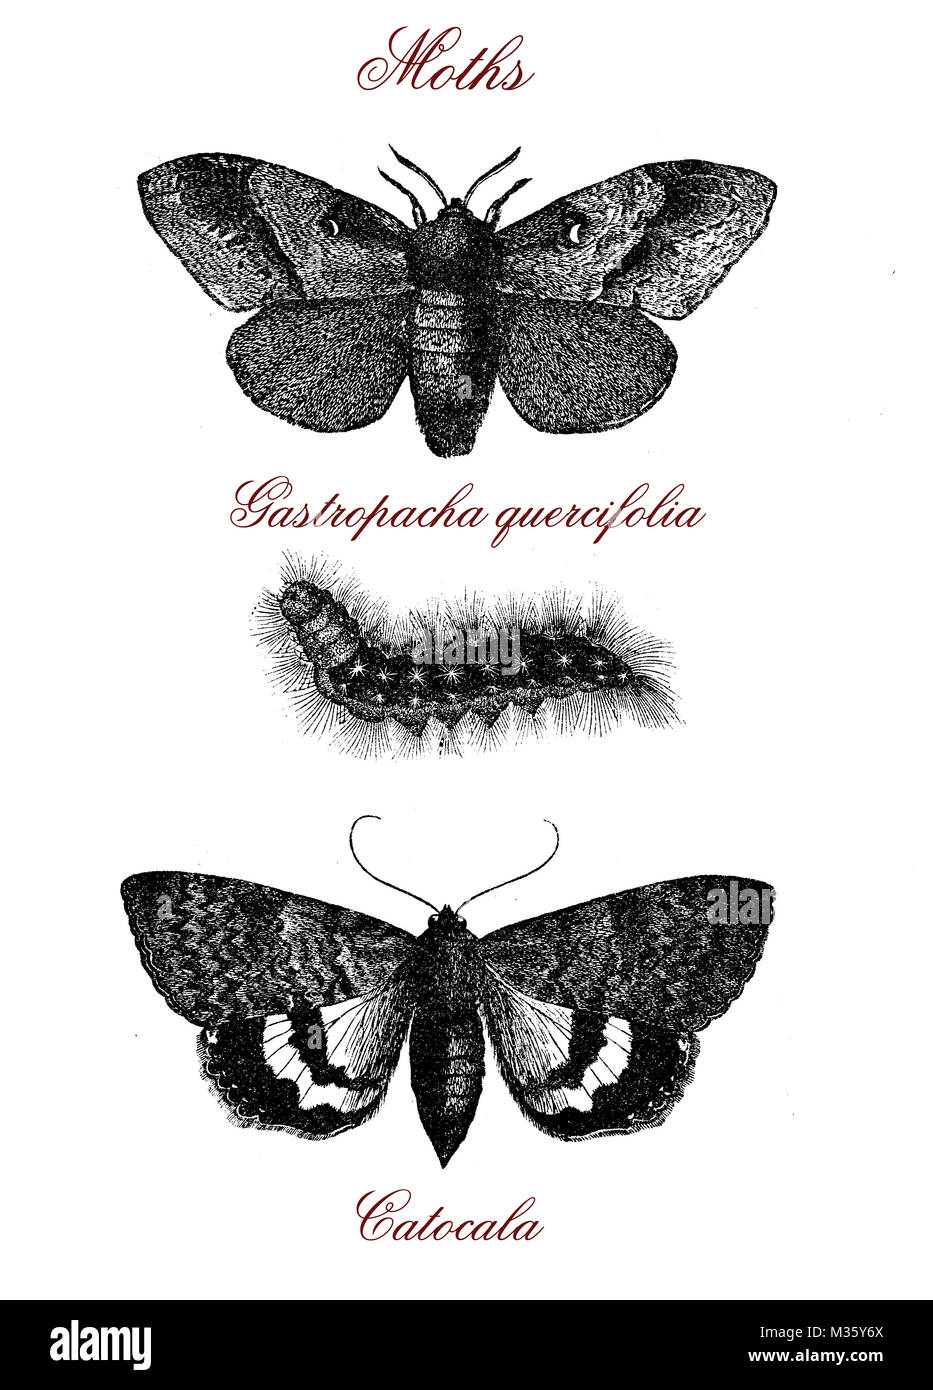 Moths: gastropacha quercifolia and catocala, vintage engraving - Stock Image